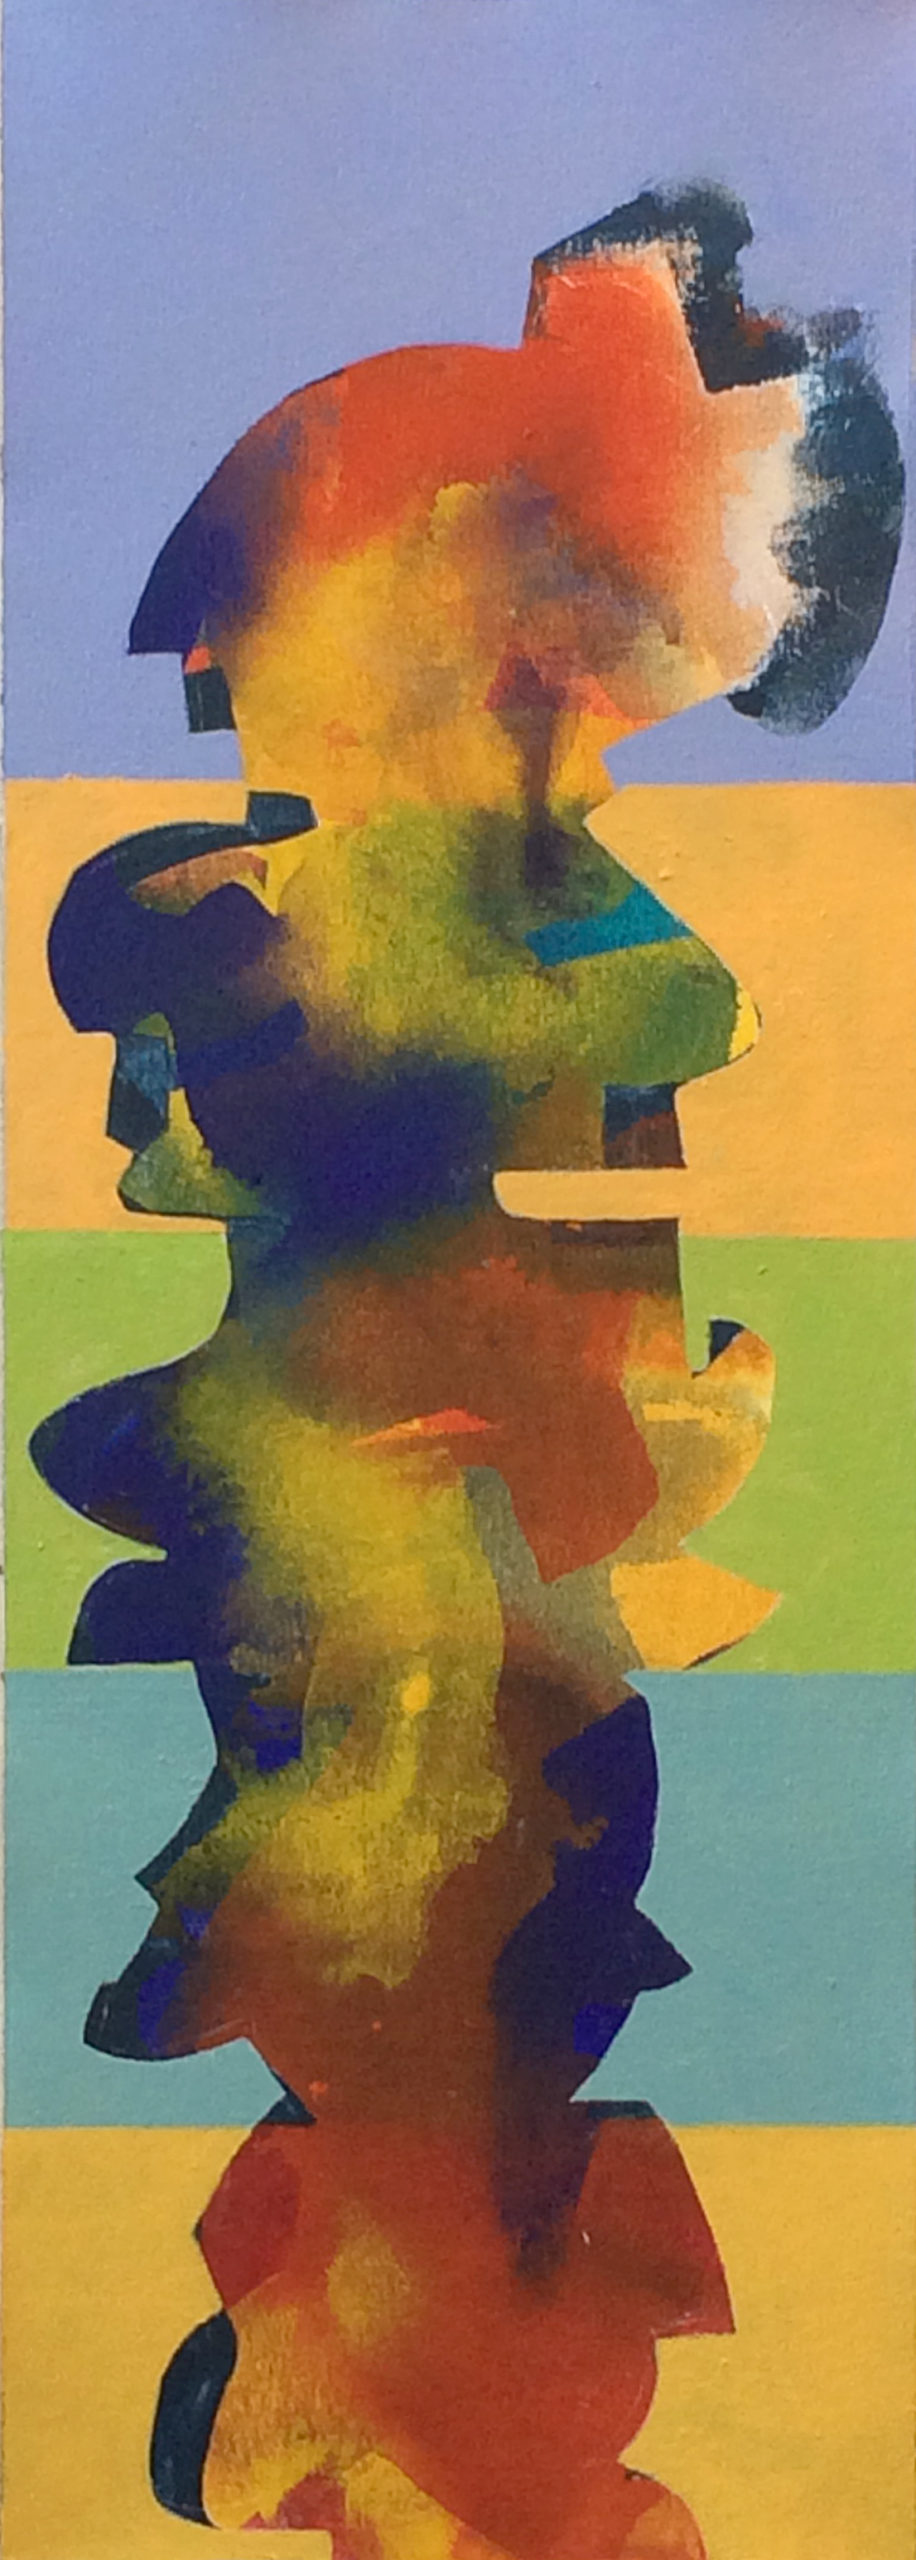 Painting, color, abstract, figurative, portrait